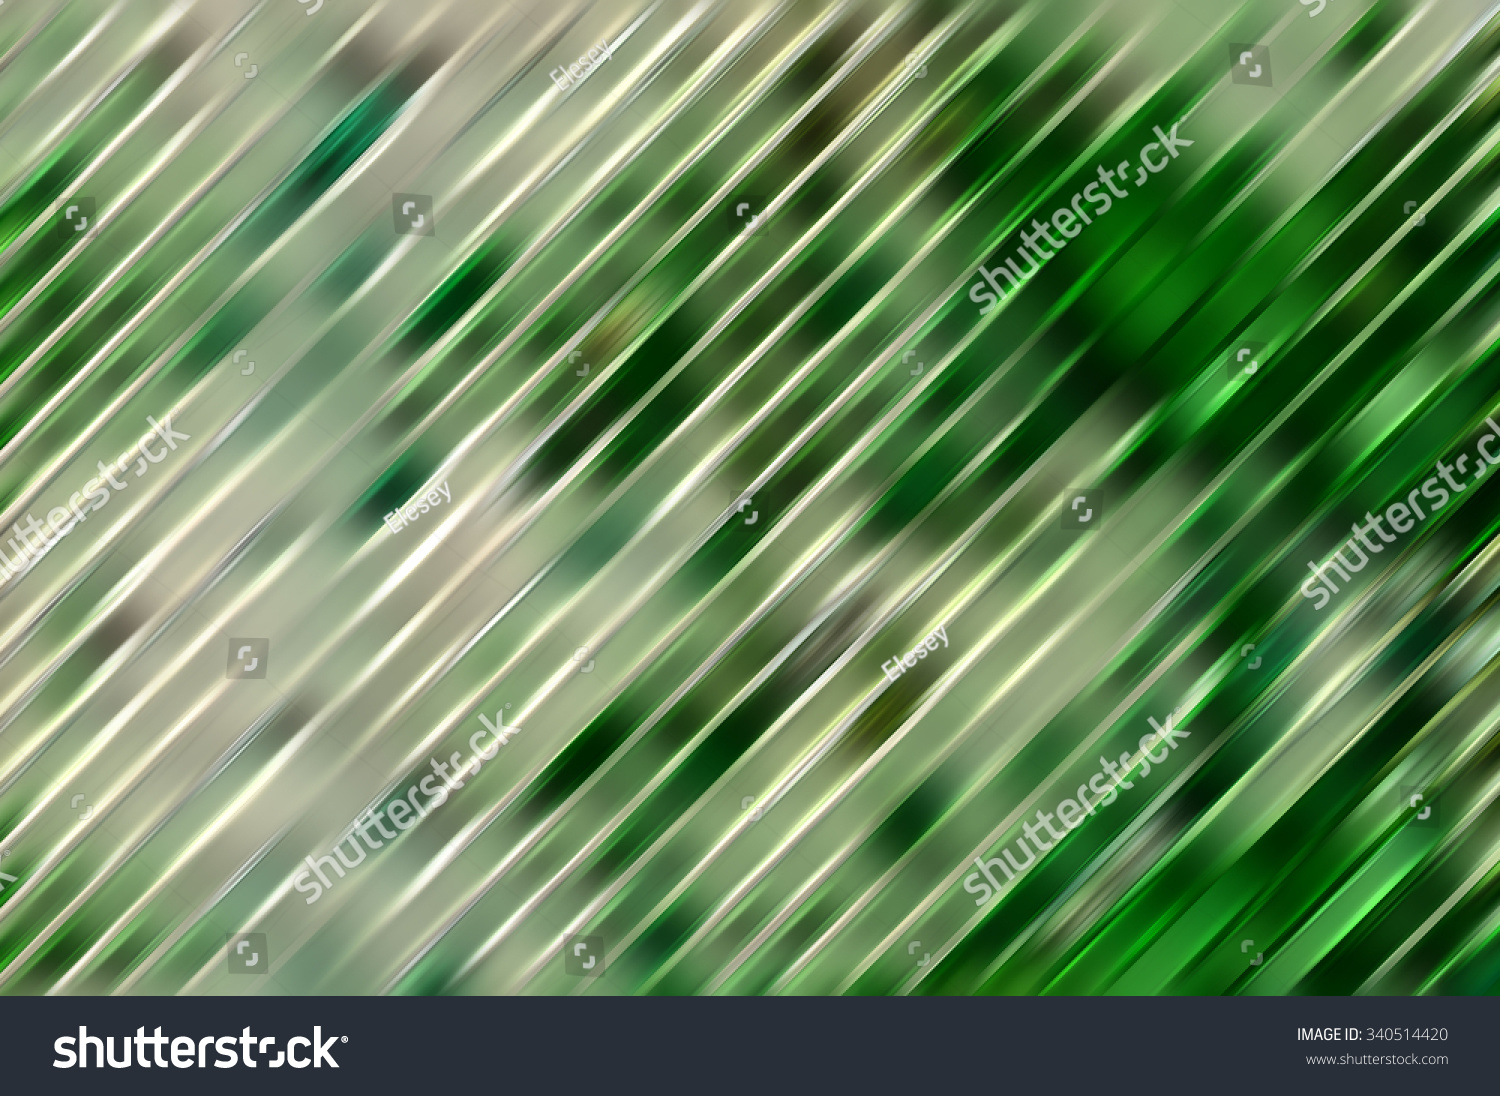 Abstract Green Background Diagonal Lines Strips Stock ...